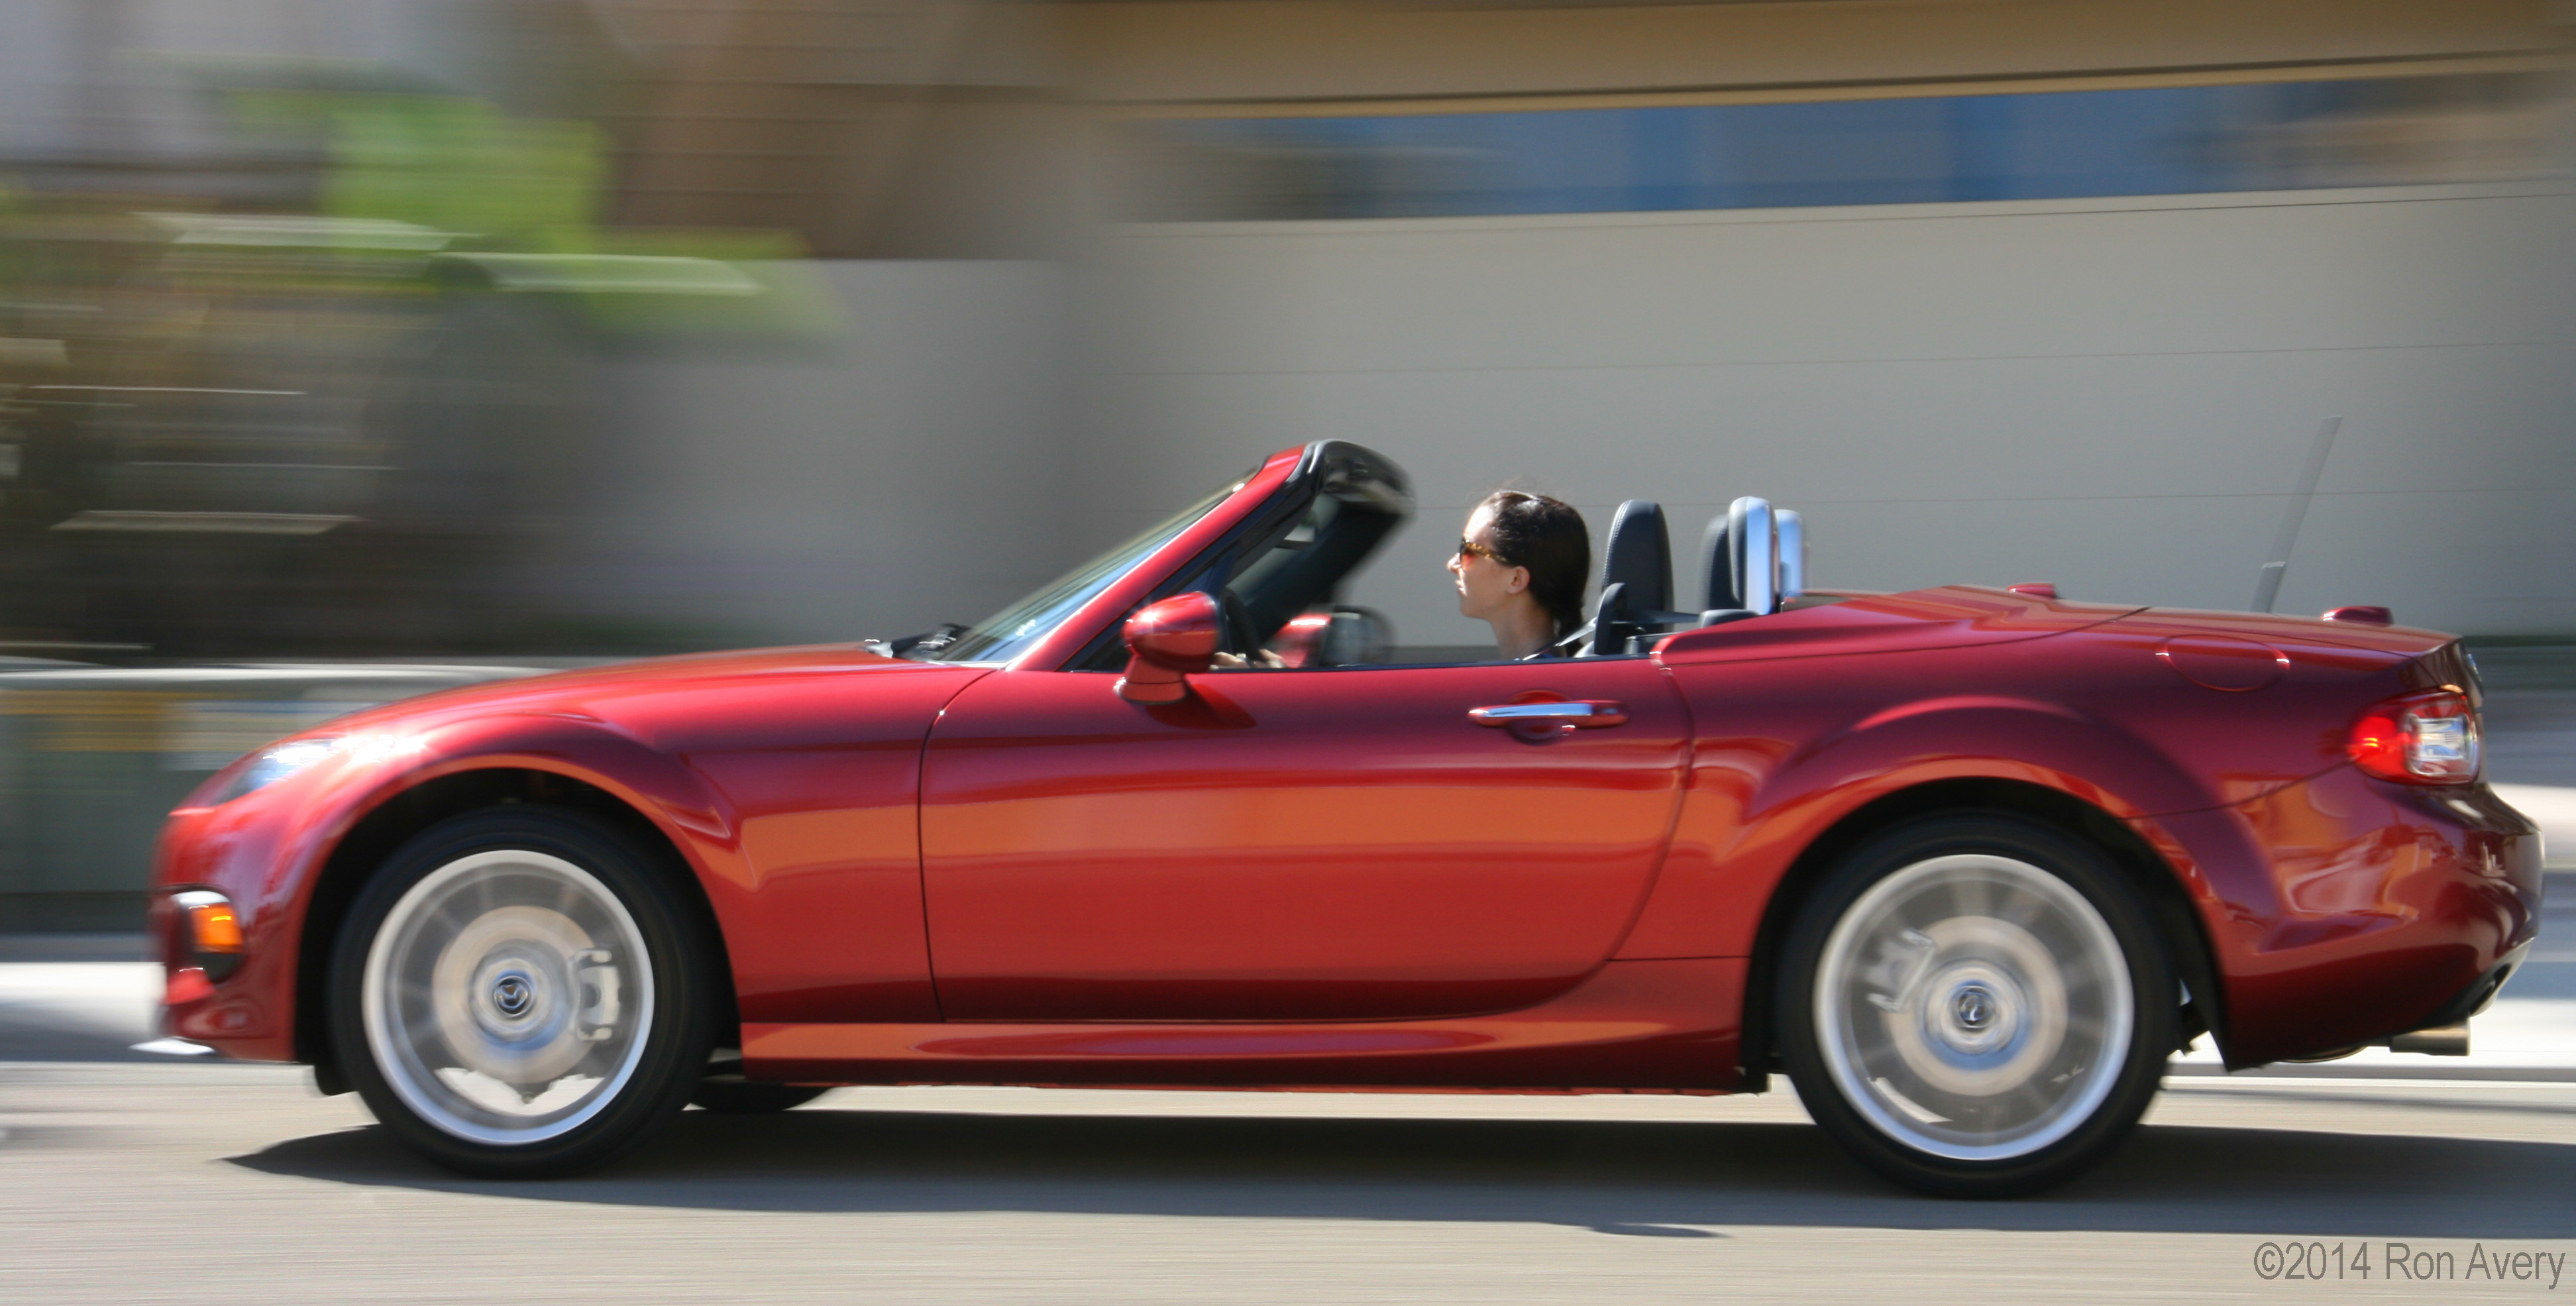 2015 Mazda MX-5 Miata Grand Touring: The Mulholland Highway Test